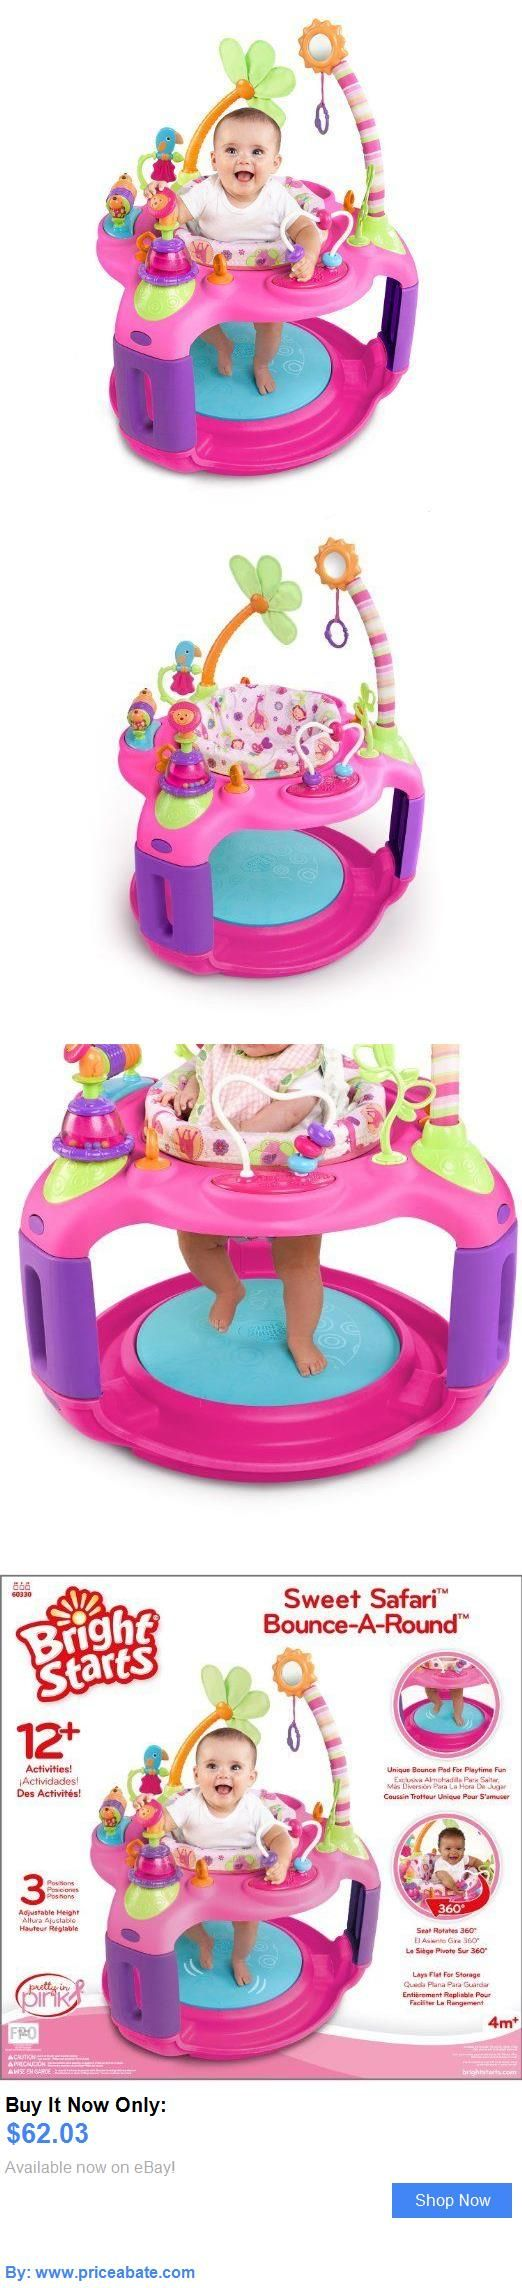 Baby: Girls Baby Bouncer Adjustable Activity Jumper Infant Toy Walker Learning Seat BUY IT NOW ONLY: $62.03 #priceabateBaby OR #priceabate